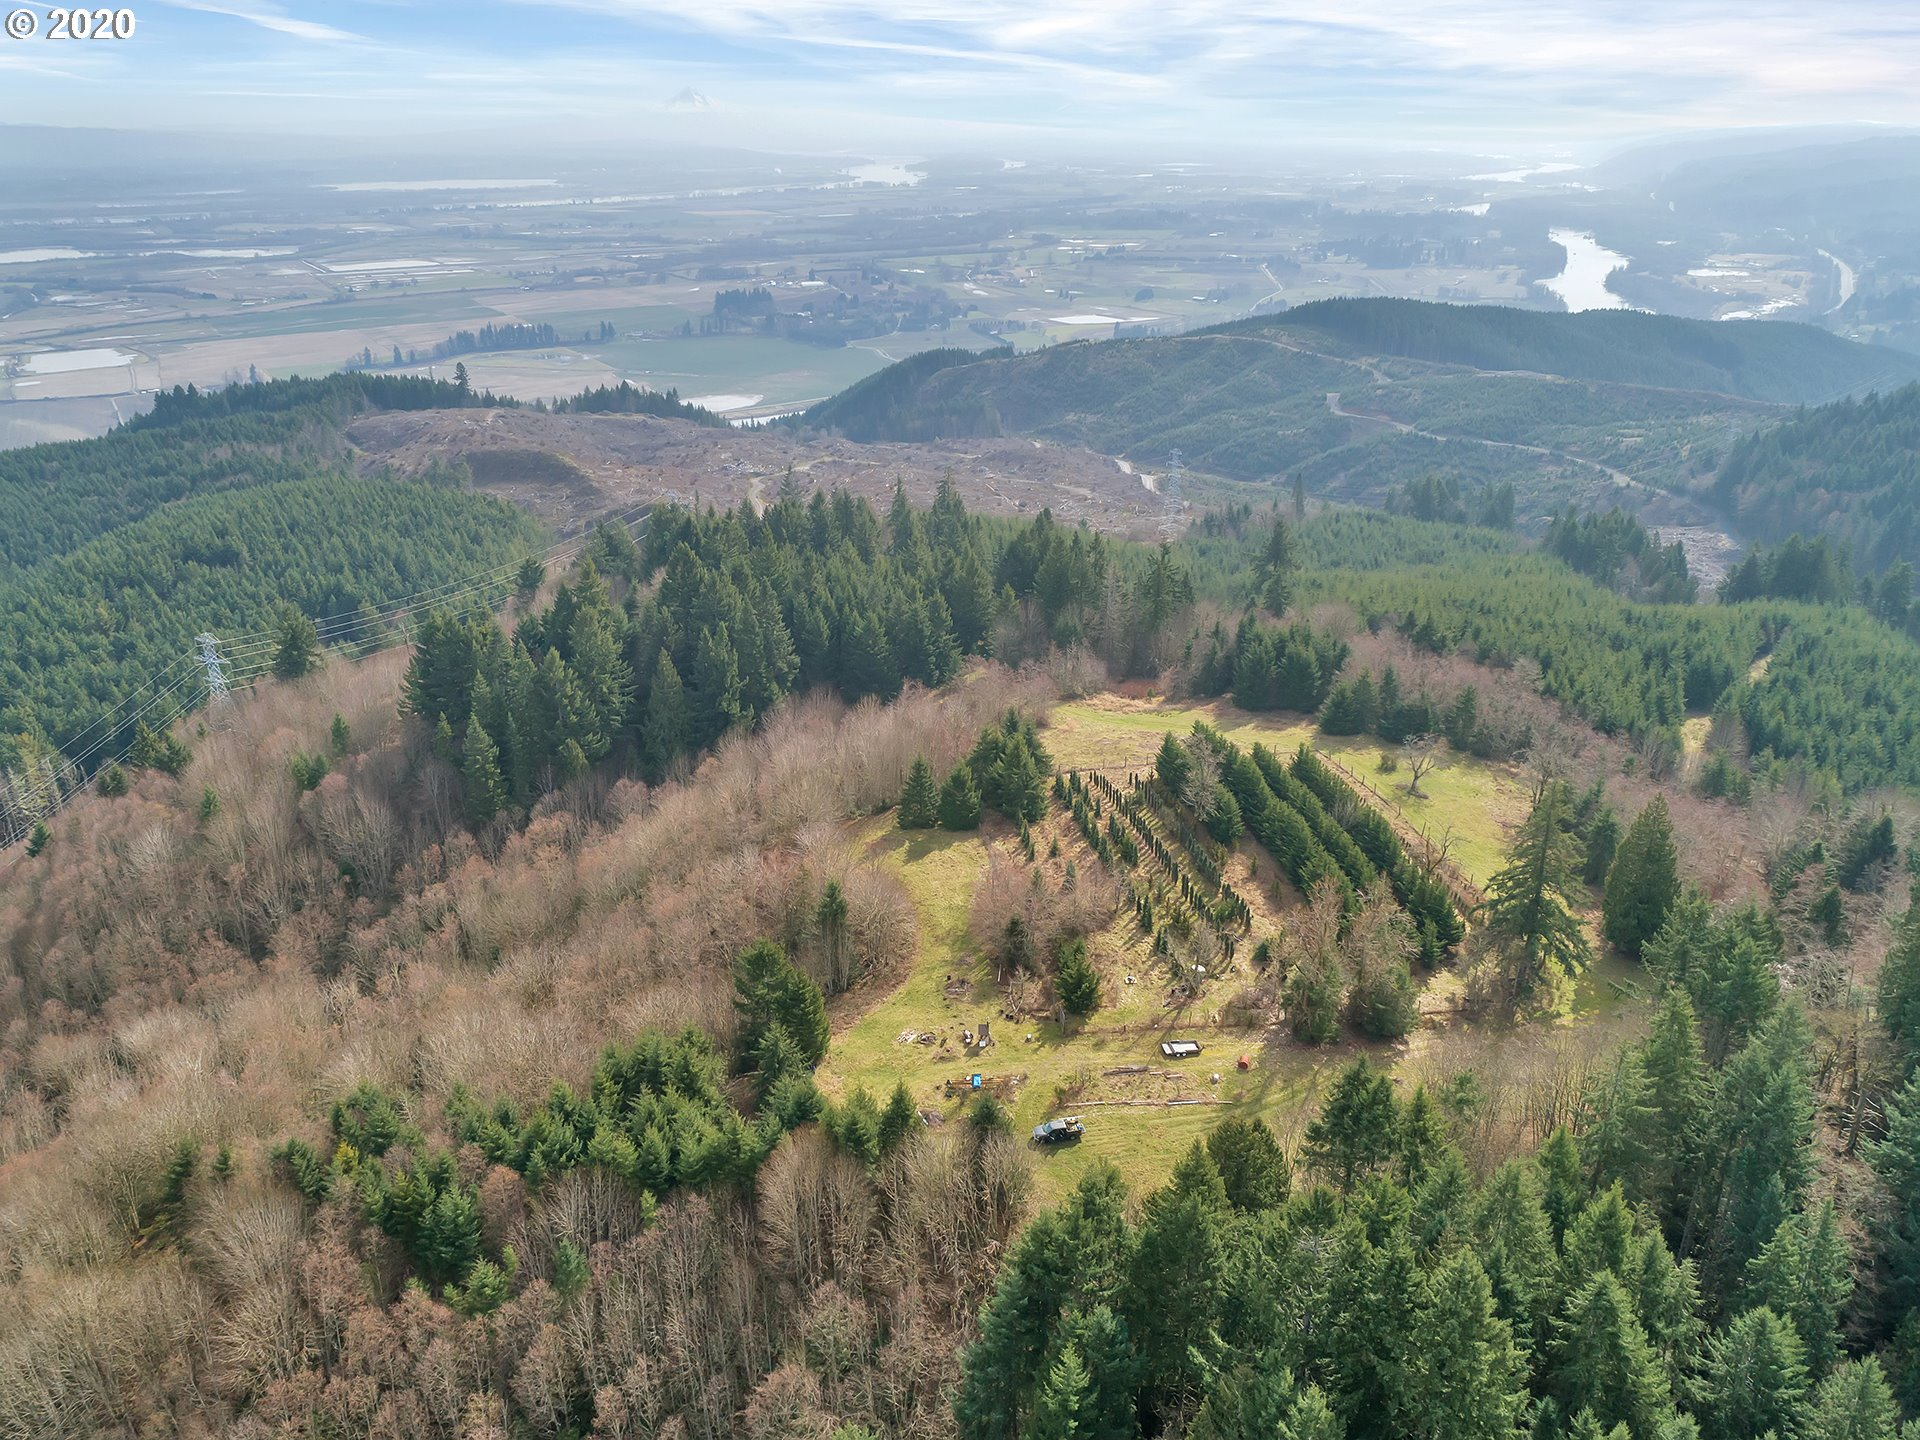 Imagine the relaxation, peace of mind & joy of playing on this rural 30 forested acres just 30 minutes from downtown Portland. No buildings/home permitted here at this time but possible permitted uses include: private forest, recreational facility/park, forest products production, nursery, private hunting reserve, farm uses including food production, livestock or horses & soil, air water quality, fish and wildlife conservation. See/request Multnomah Cnty CFU zoning  code-Buyer to verify all info